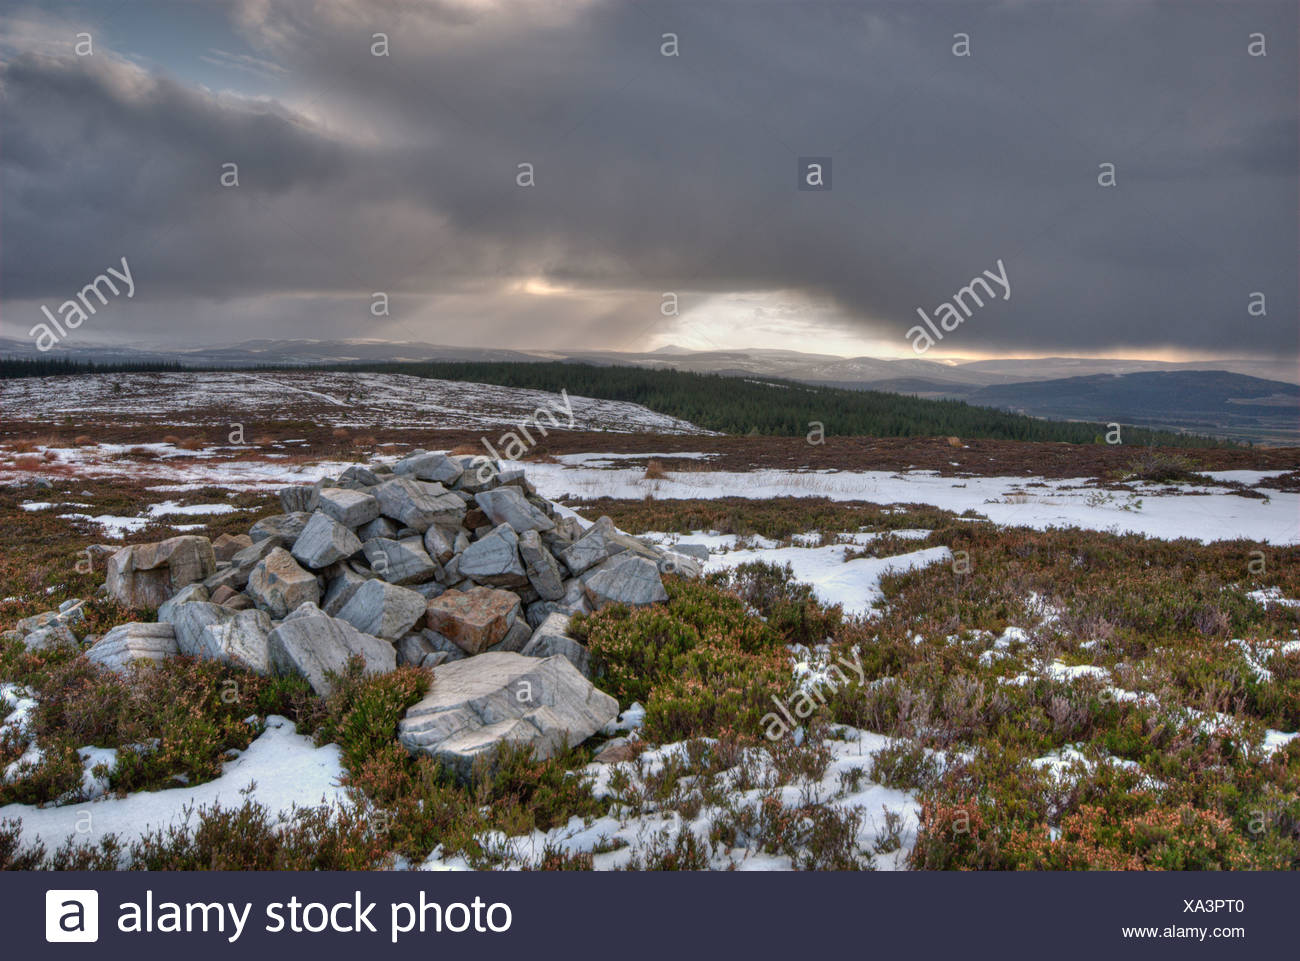 Cairn halfway Meikle Balloch Hill with views in south/east direction. - Stock Image